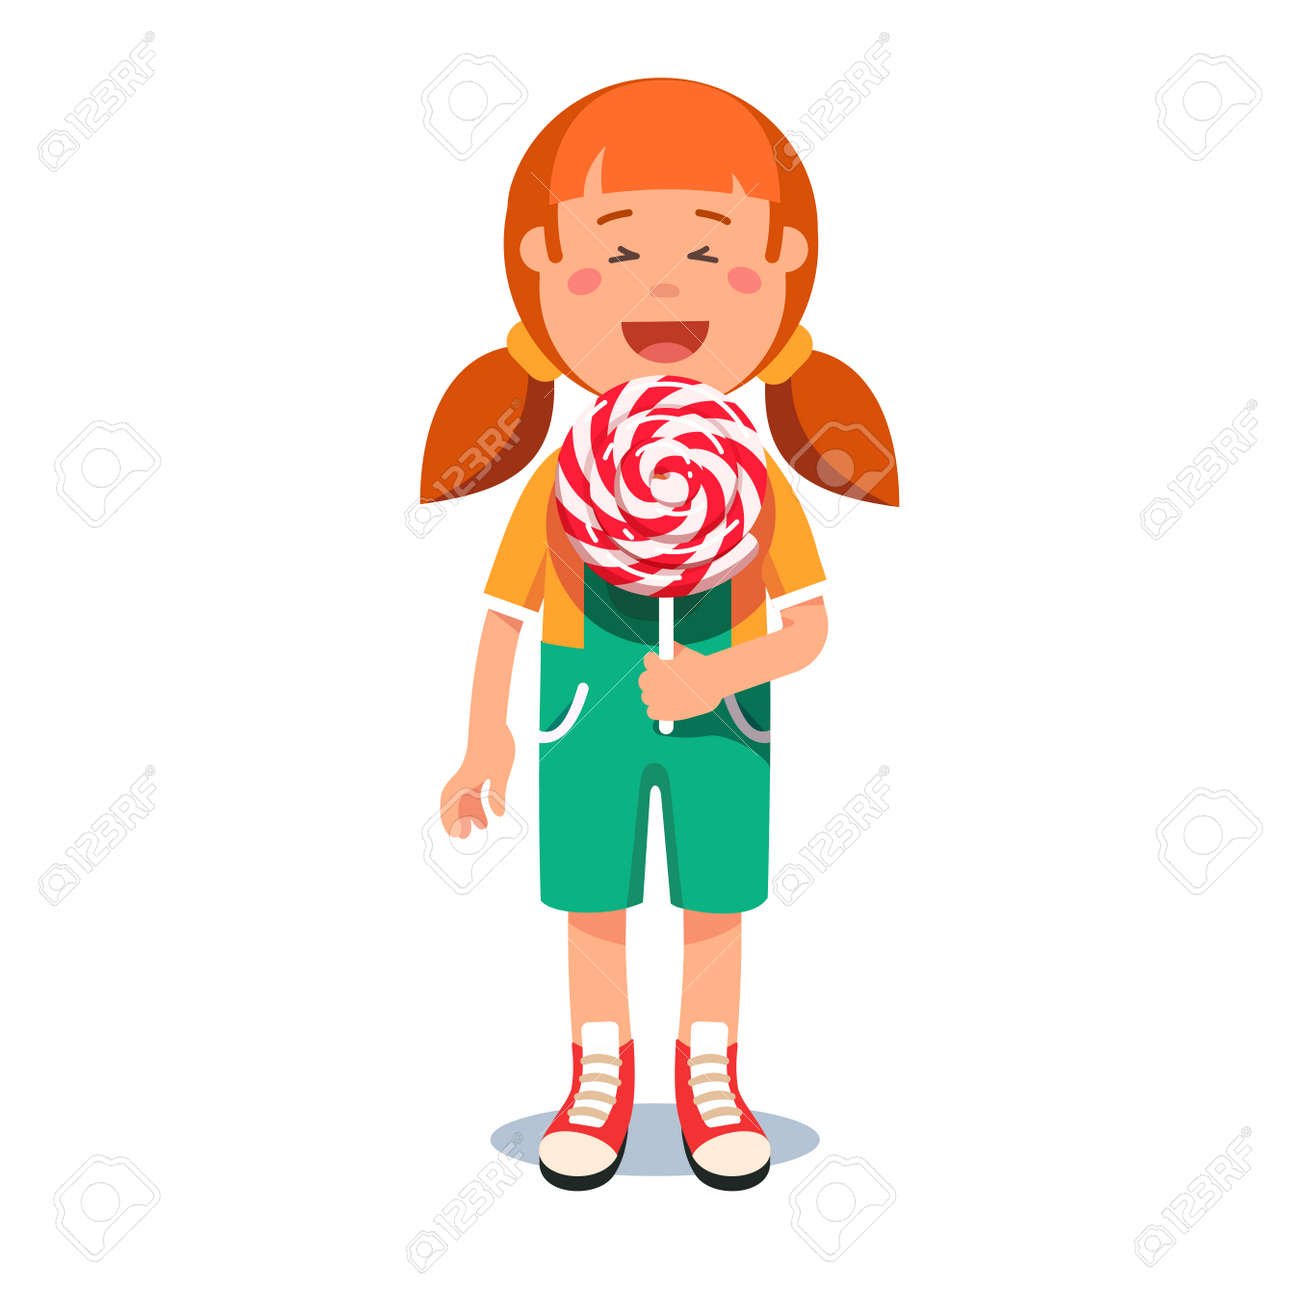 hight resolution of cute little girl standing with big swirly lollipop stock vector 83809444